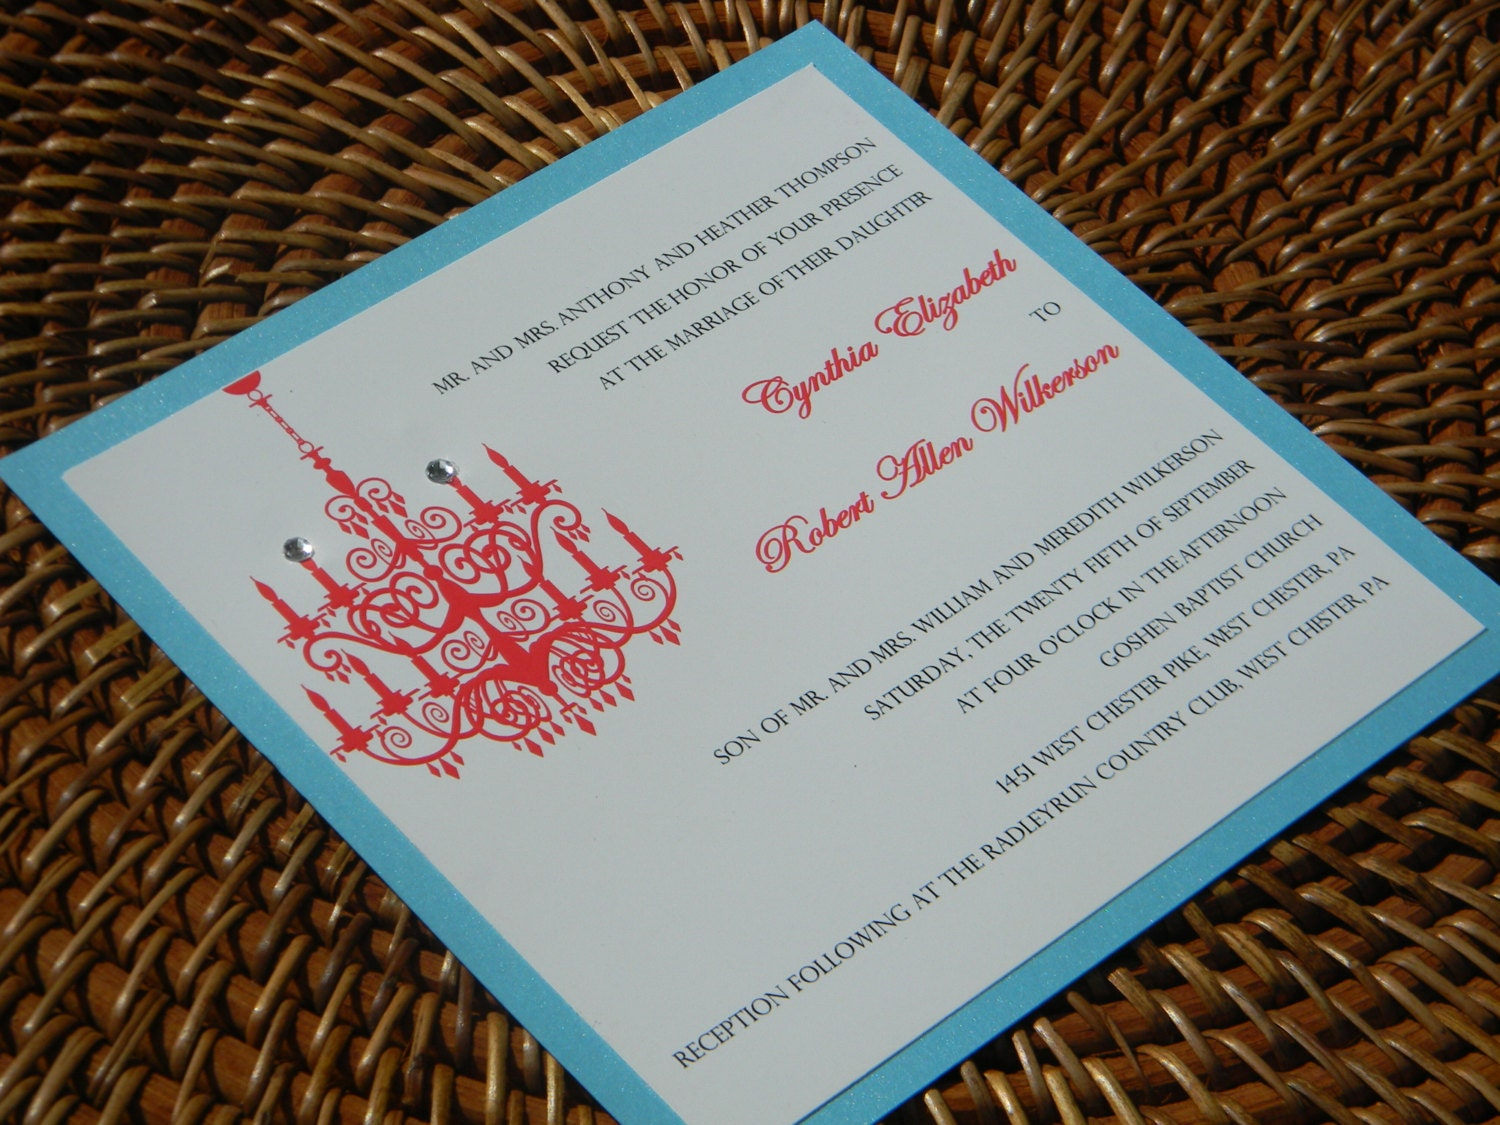 Chandelier Wedding Invitations: Chandelier Wedding Invitation With Chandelier And Crystals